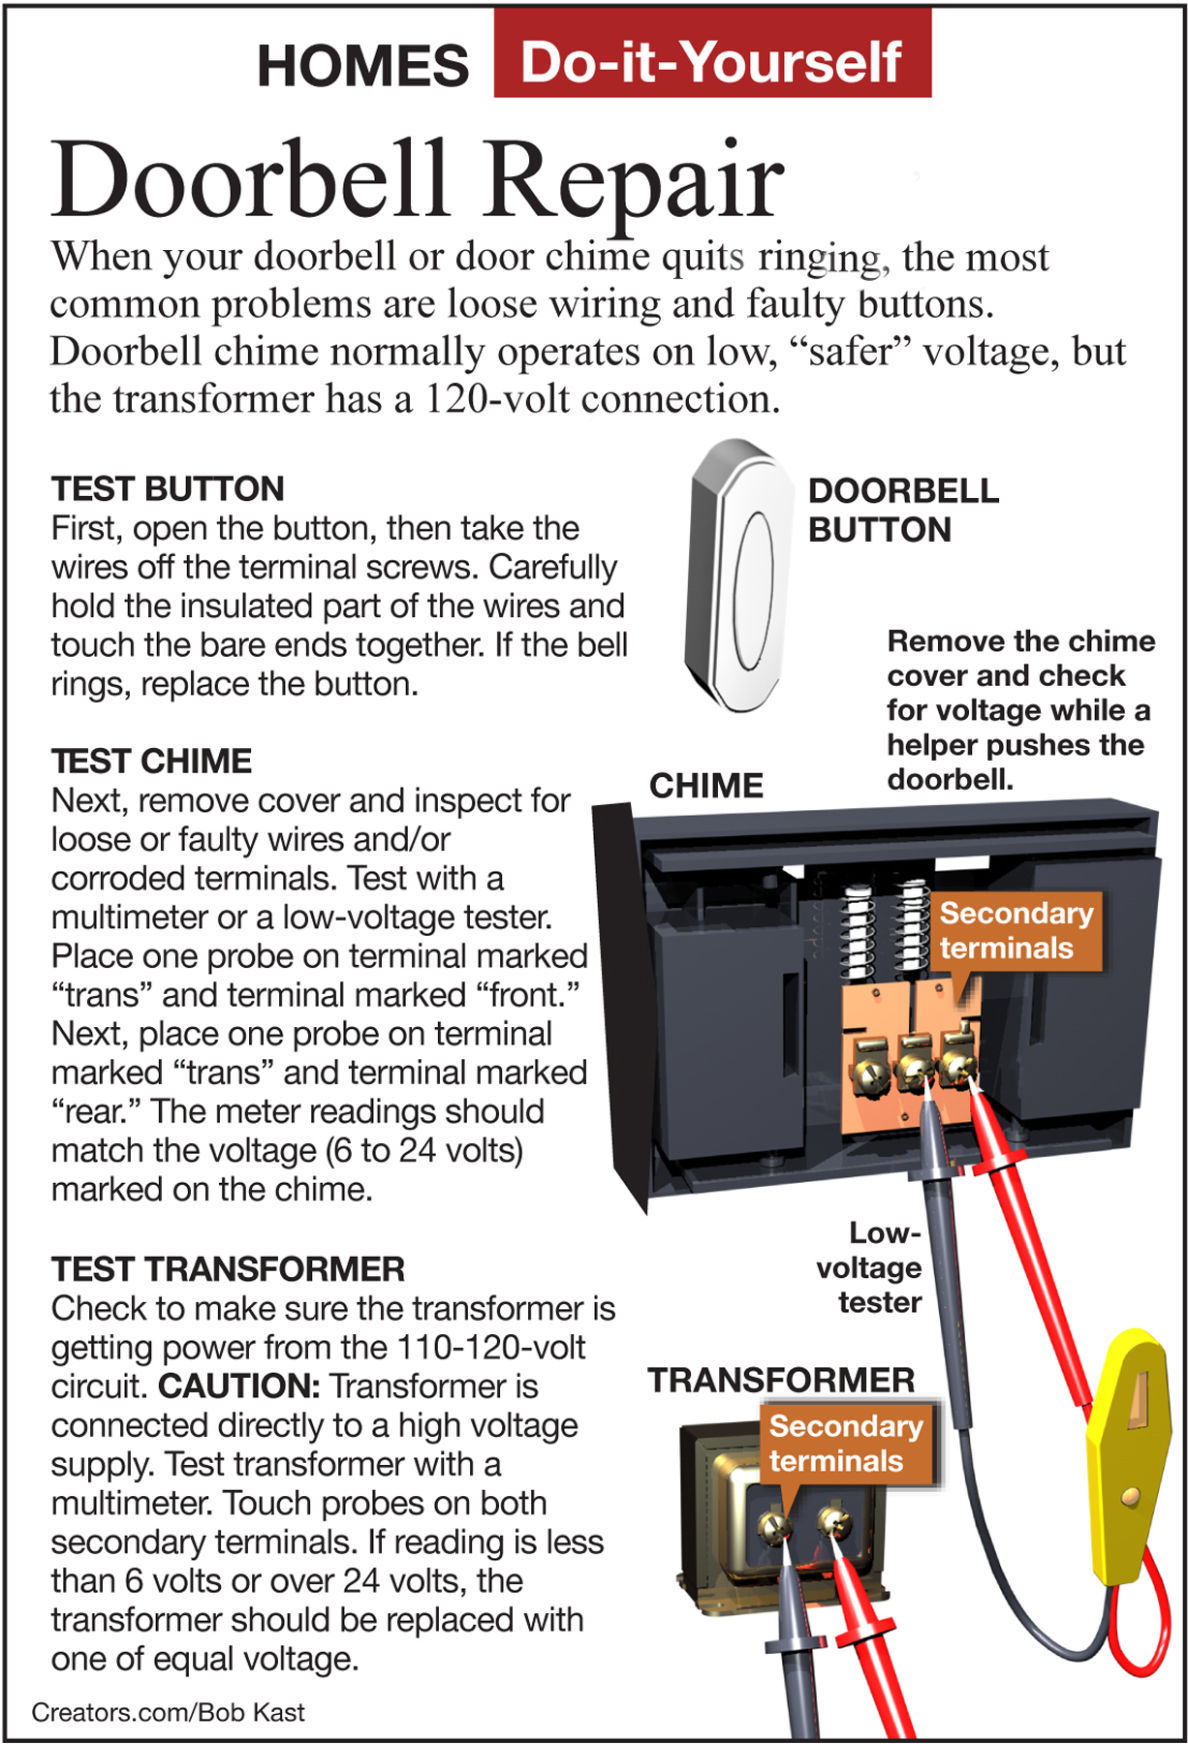 Doorbell Wiring Testing Trusted Diagram Doorbells In Parallel Diagrams James Dulley Install A Louder Chime Siouxland Homes